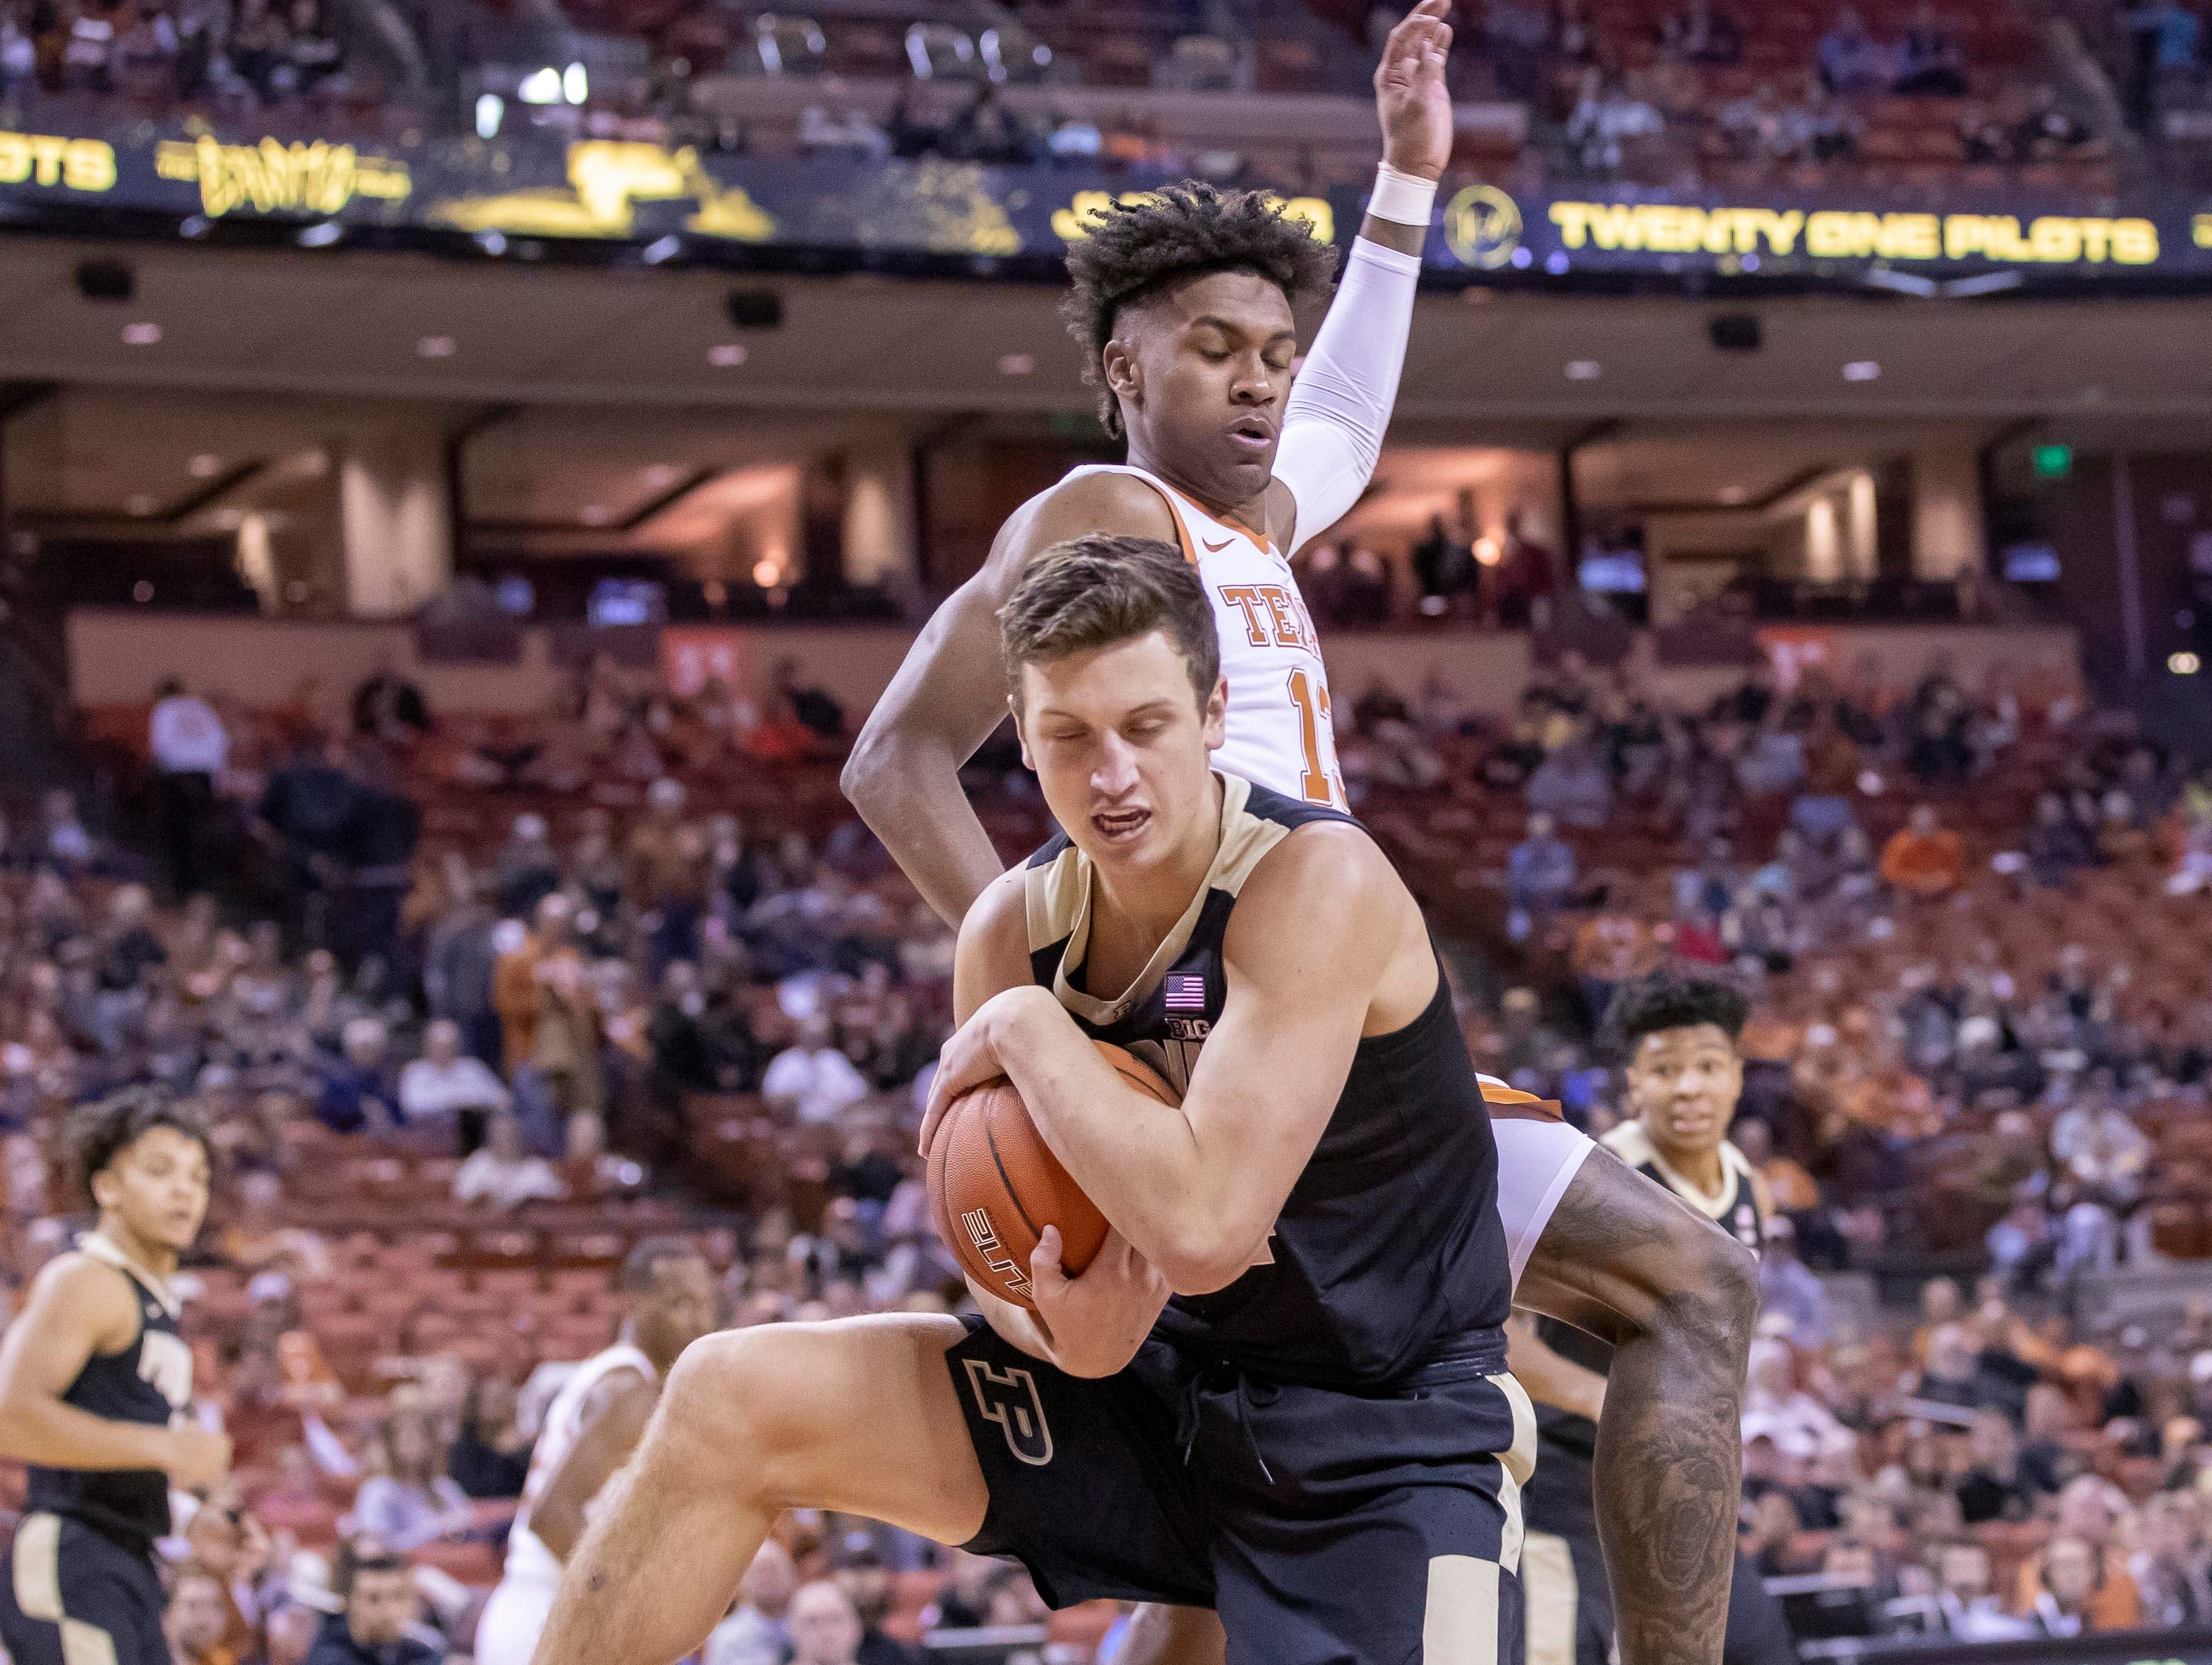 Dec 9, 2018; Austin, TX, USA; Purdue Boilermakers forward Grady Eifert (24) rebounds the ball against the Texas Longhorns at Frank Erwin Center. Mandatory Credit: John Gutierrez-USA TODAY Sports